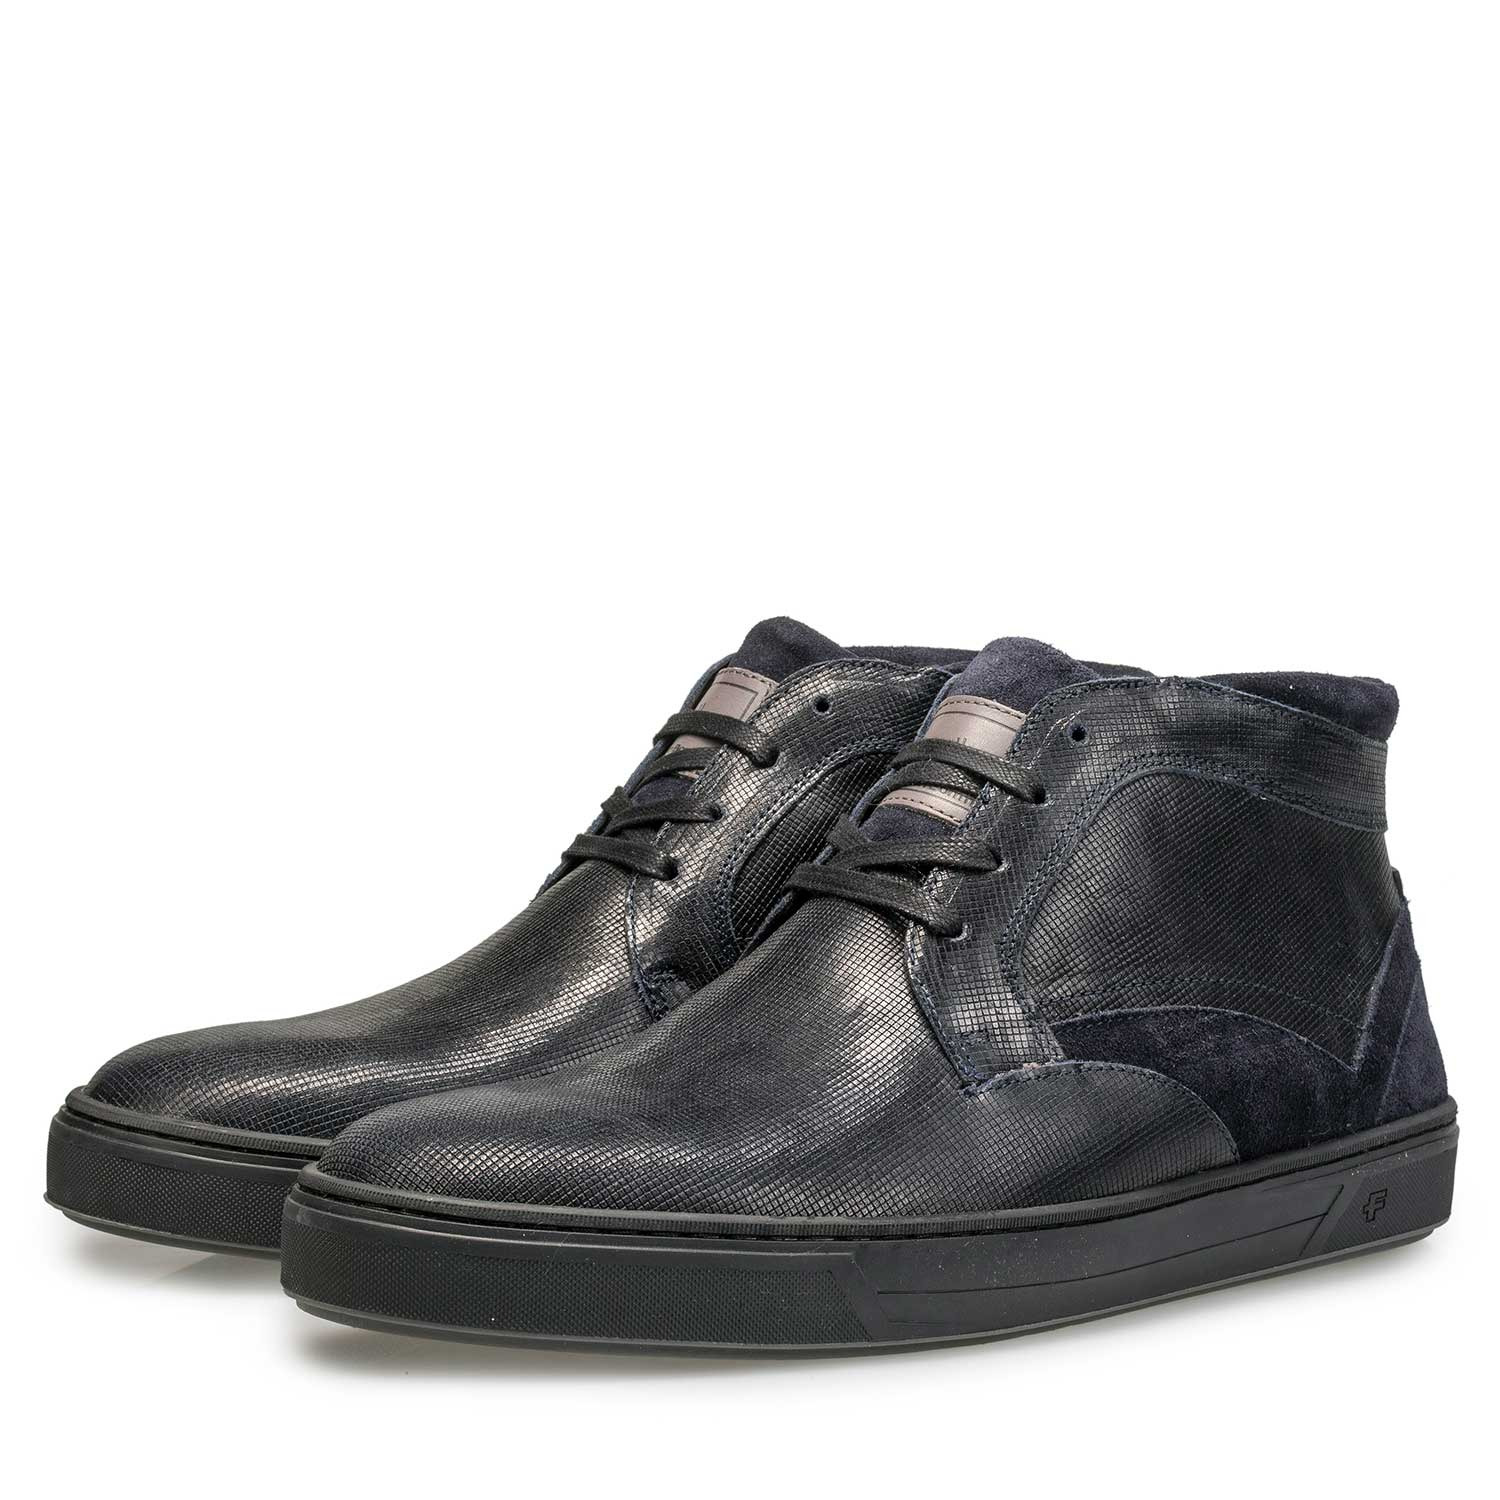 10314/00 - Lined, mid-high calf's leather shoe